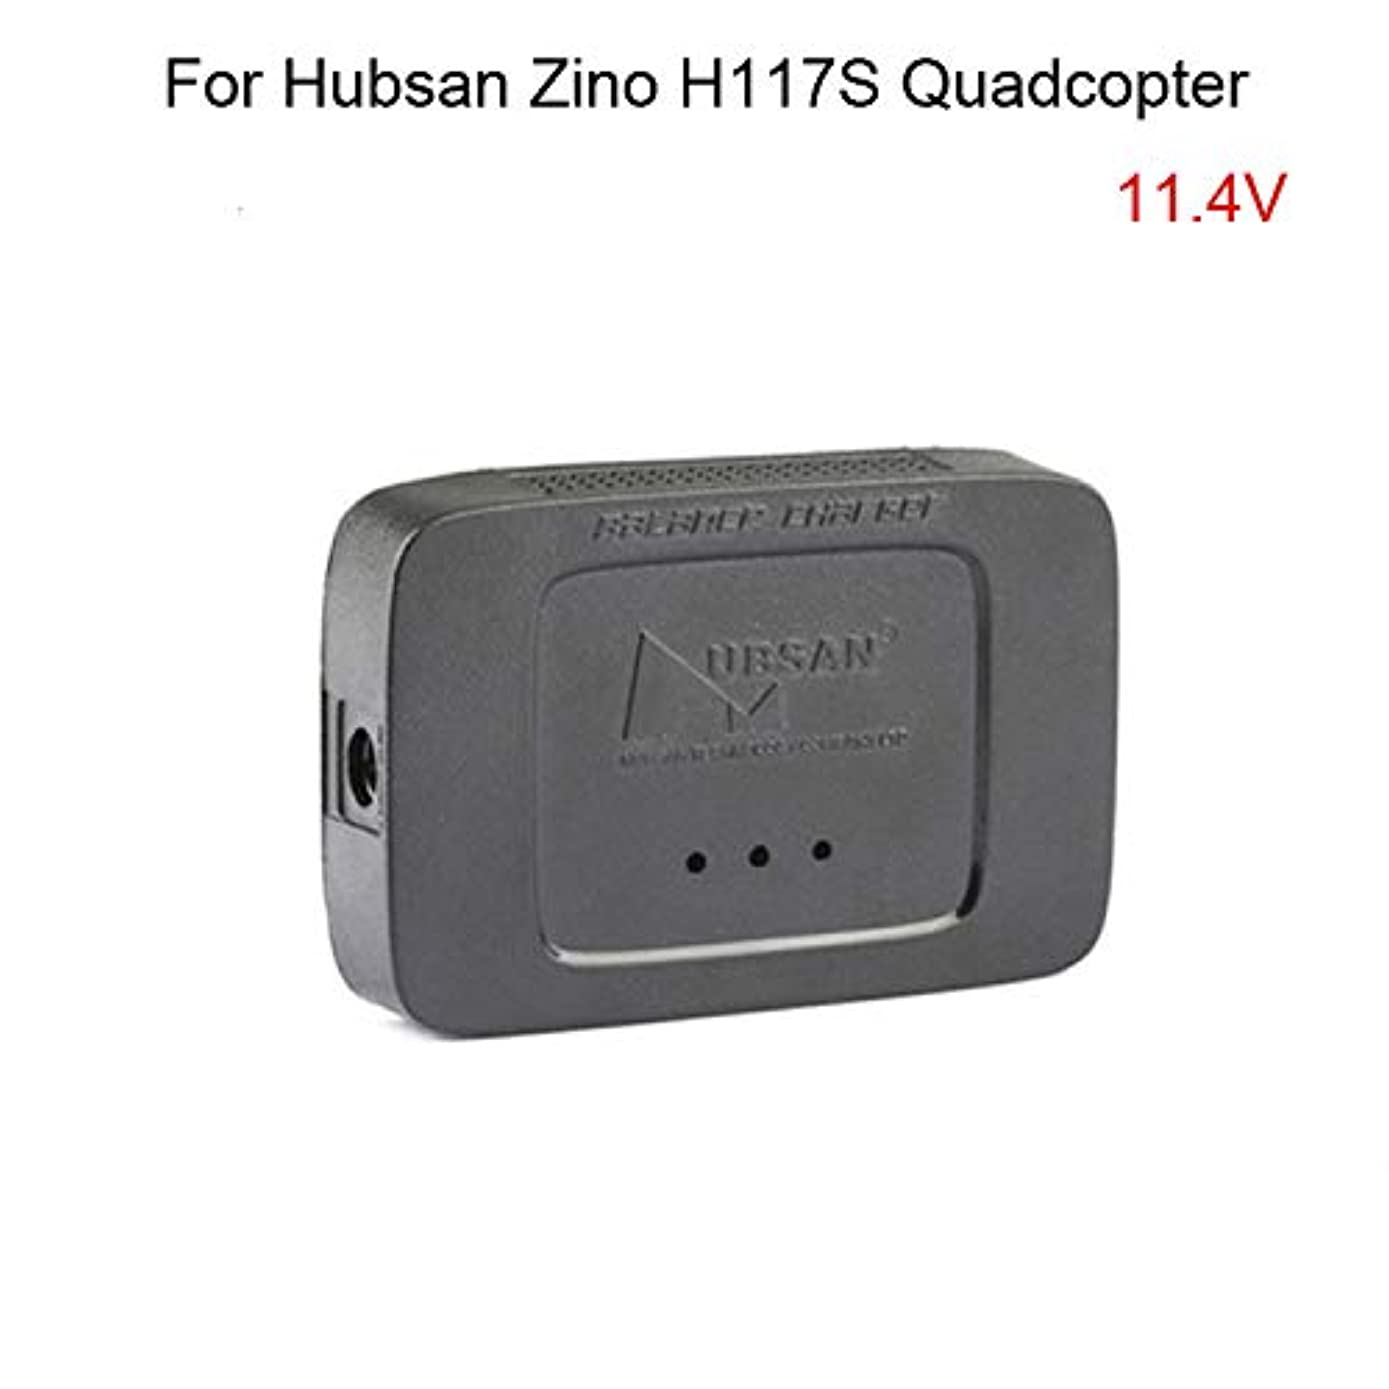 Battery RC Balance Charge for Hubsan Zino H117S Quadcopter (AS Show)